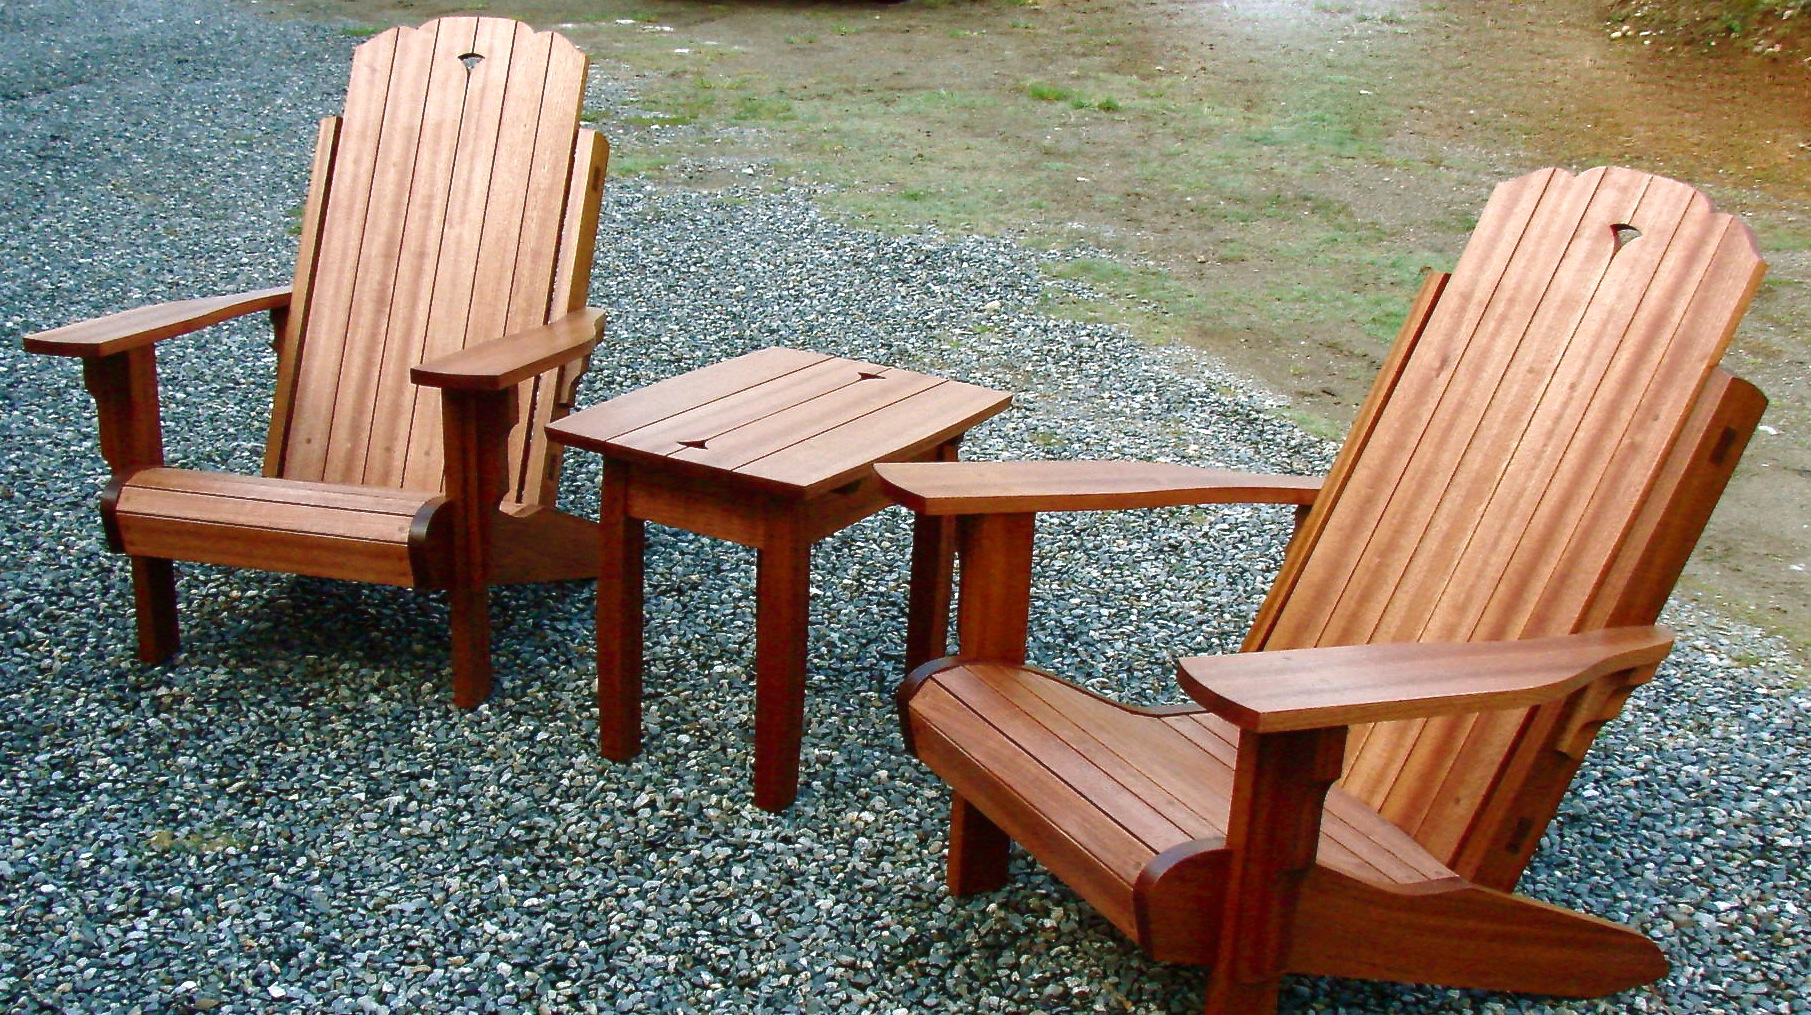 outdoor chairs and table.jpg